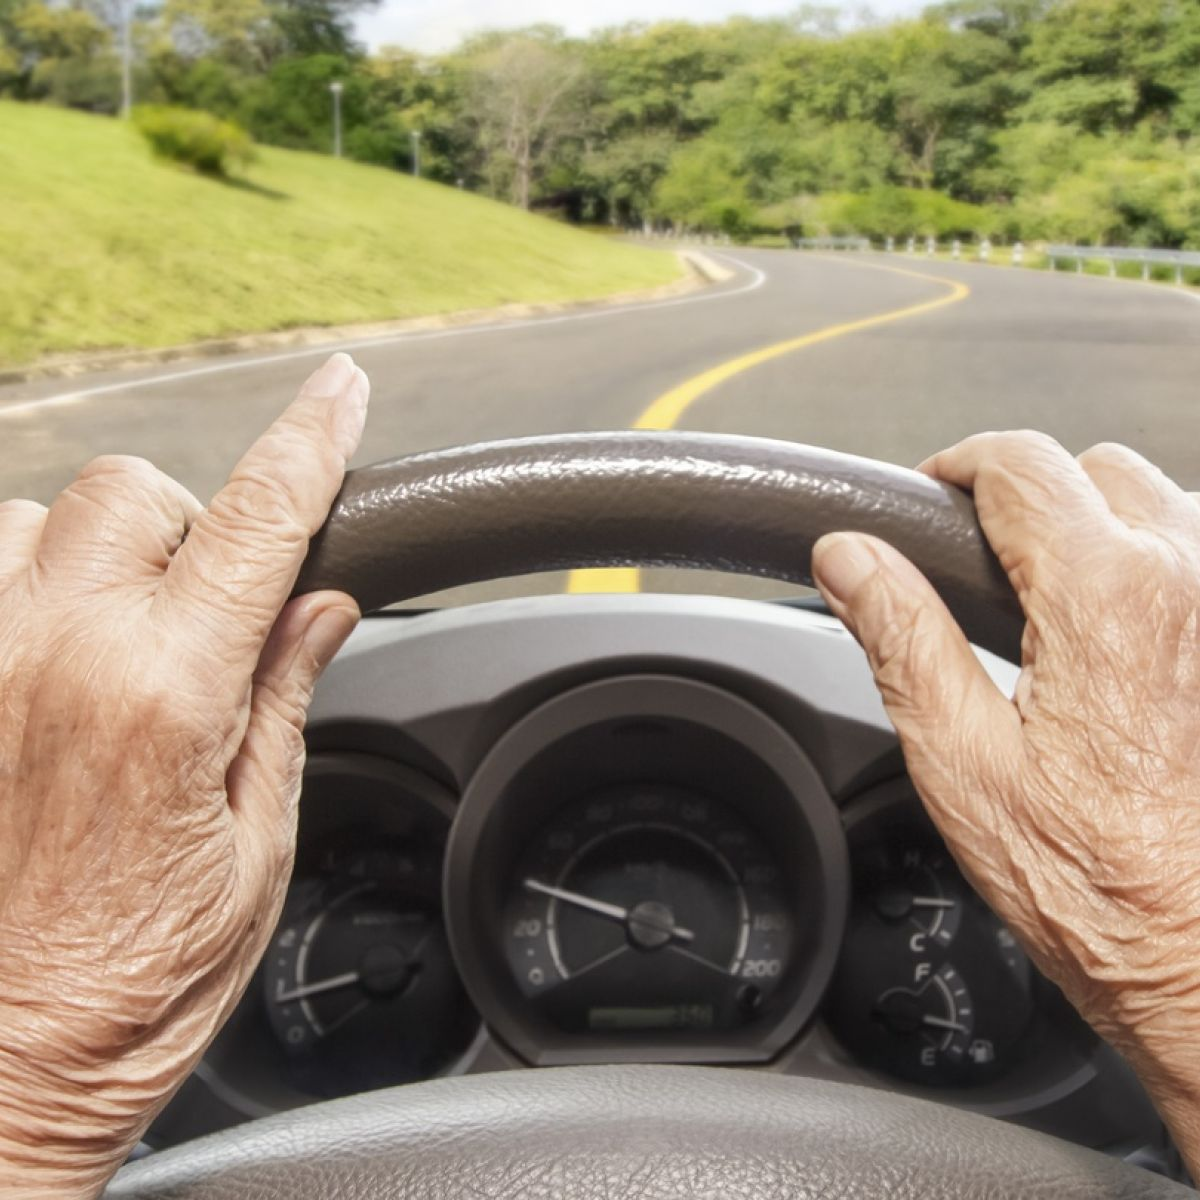 Older Drivers; Sometimes Better Historians Than Visionaries